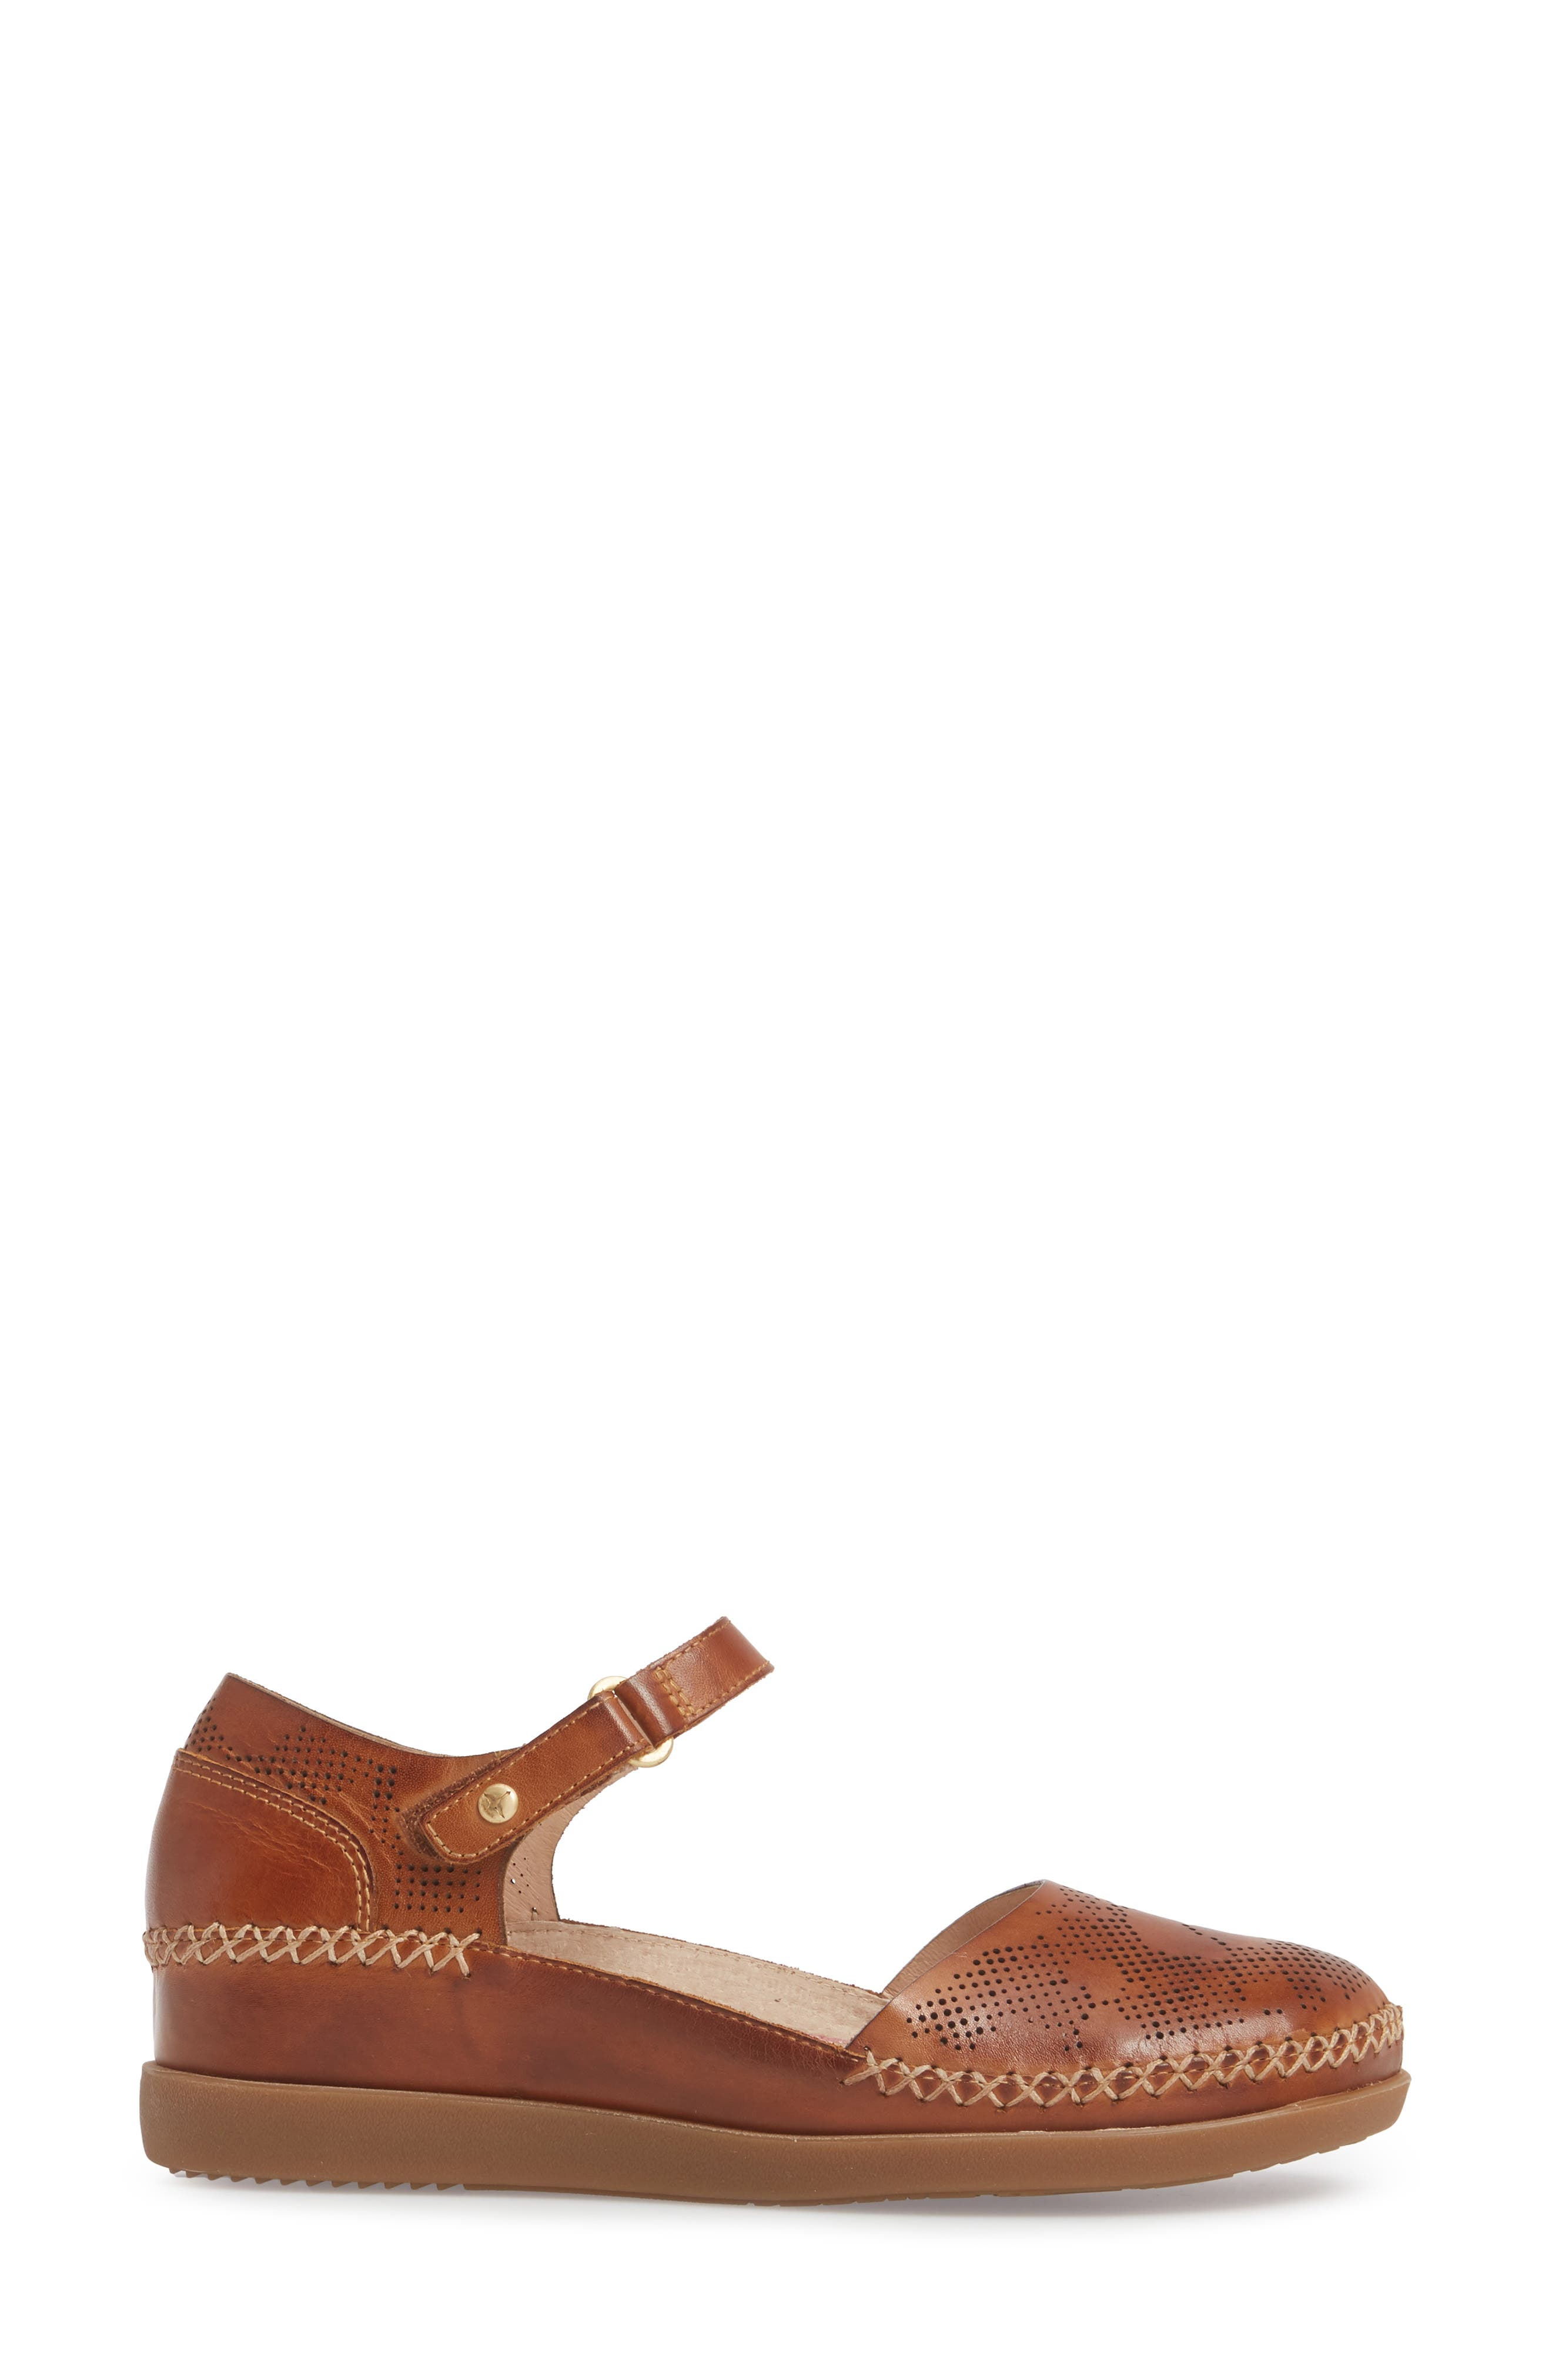 Cadaques Flat,                             Alternate thumbnail 3, color,                             BRANDY LEATHER